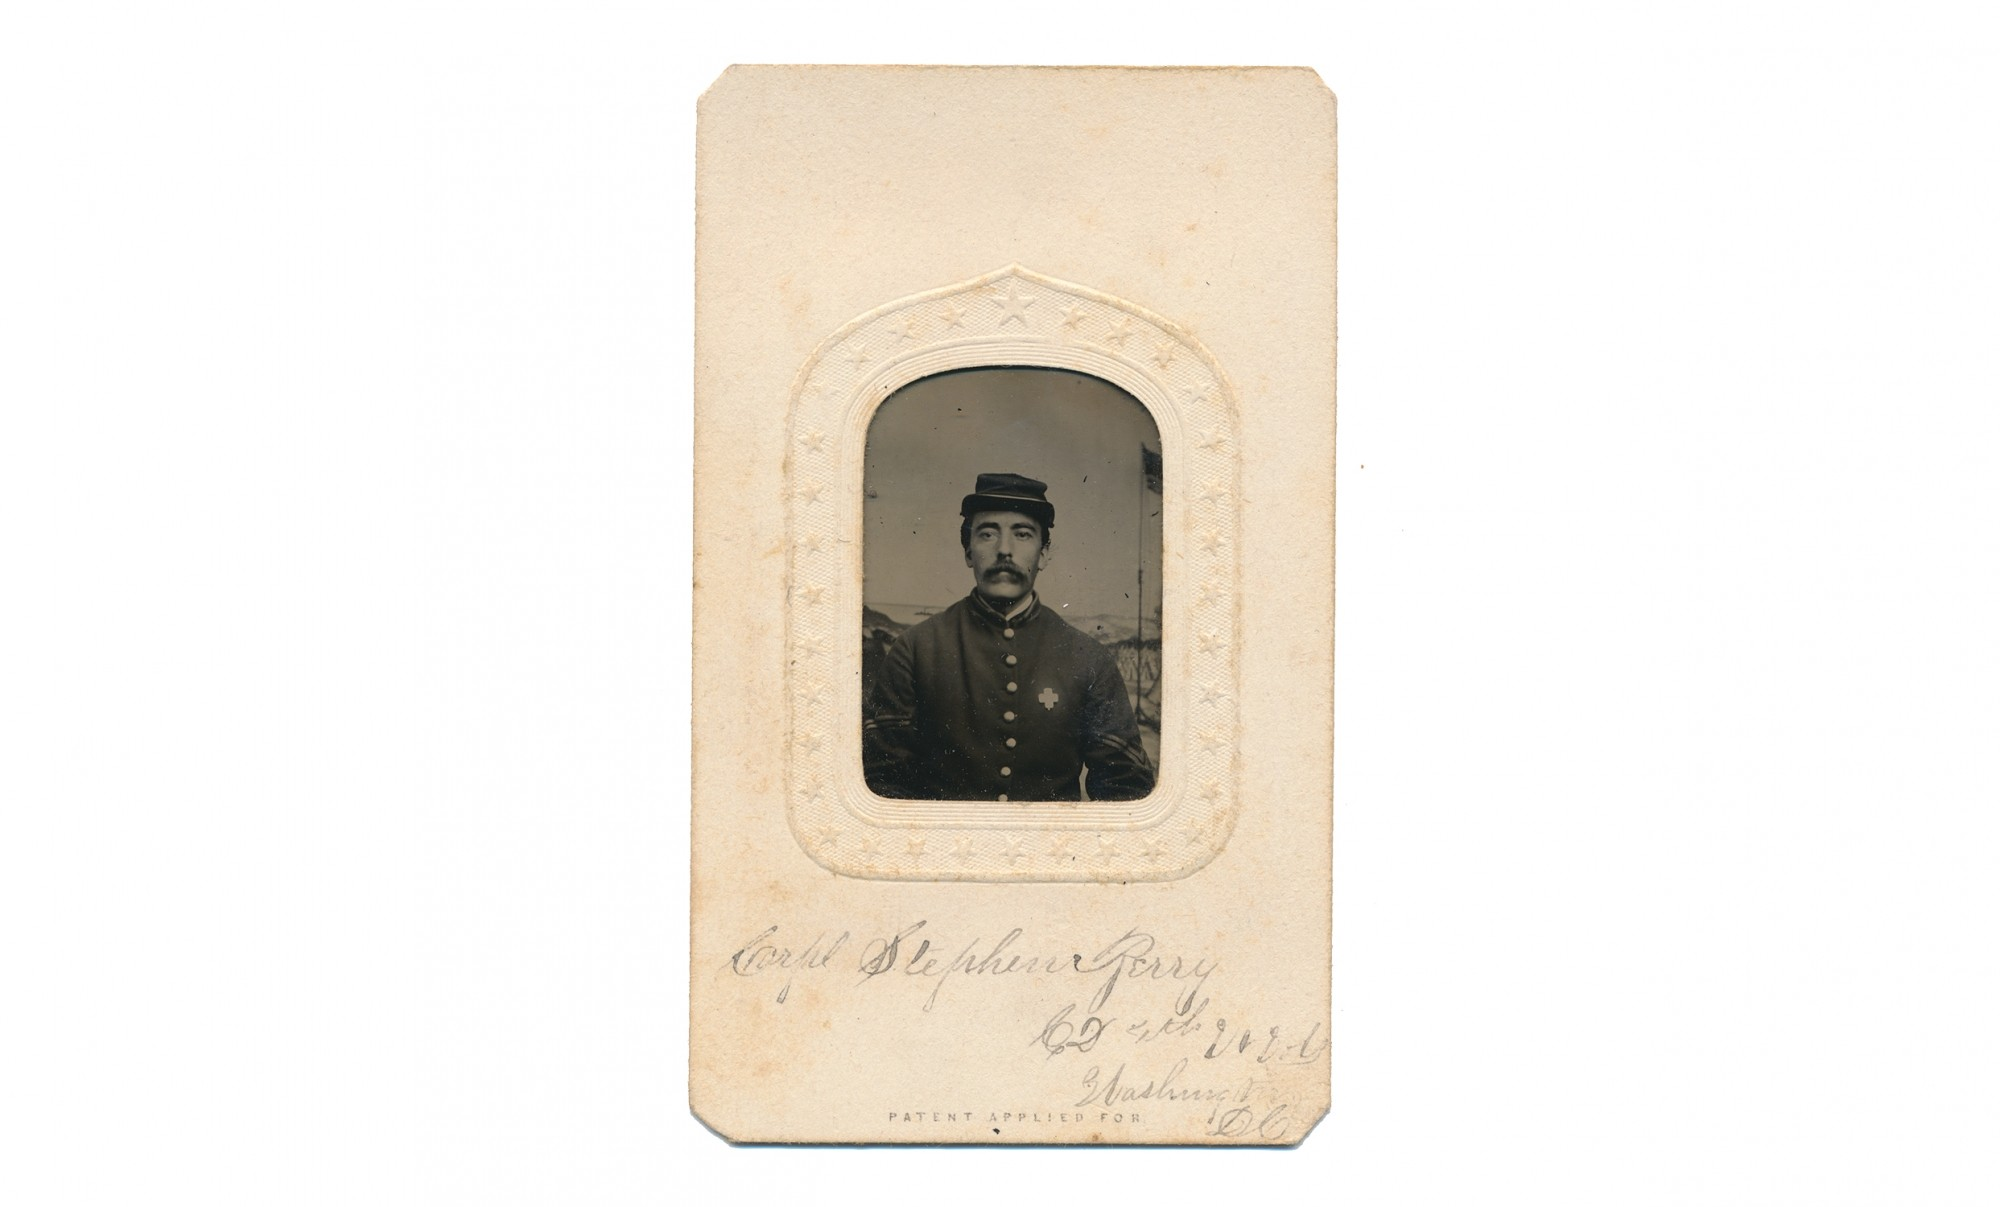 TINTYPE BUST VIEW OF 4TH VERMONT SOLDIER WOUNDED AT PETERSBURG